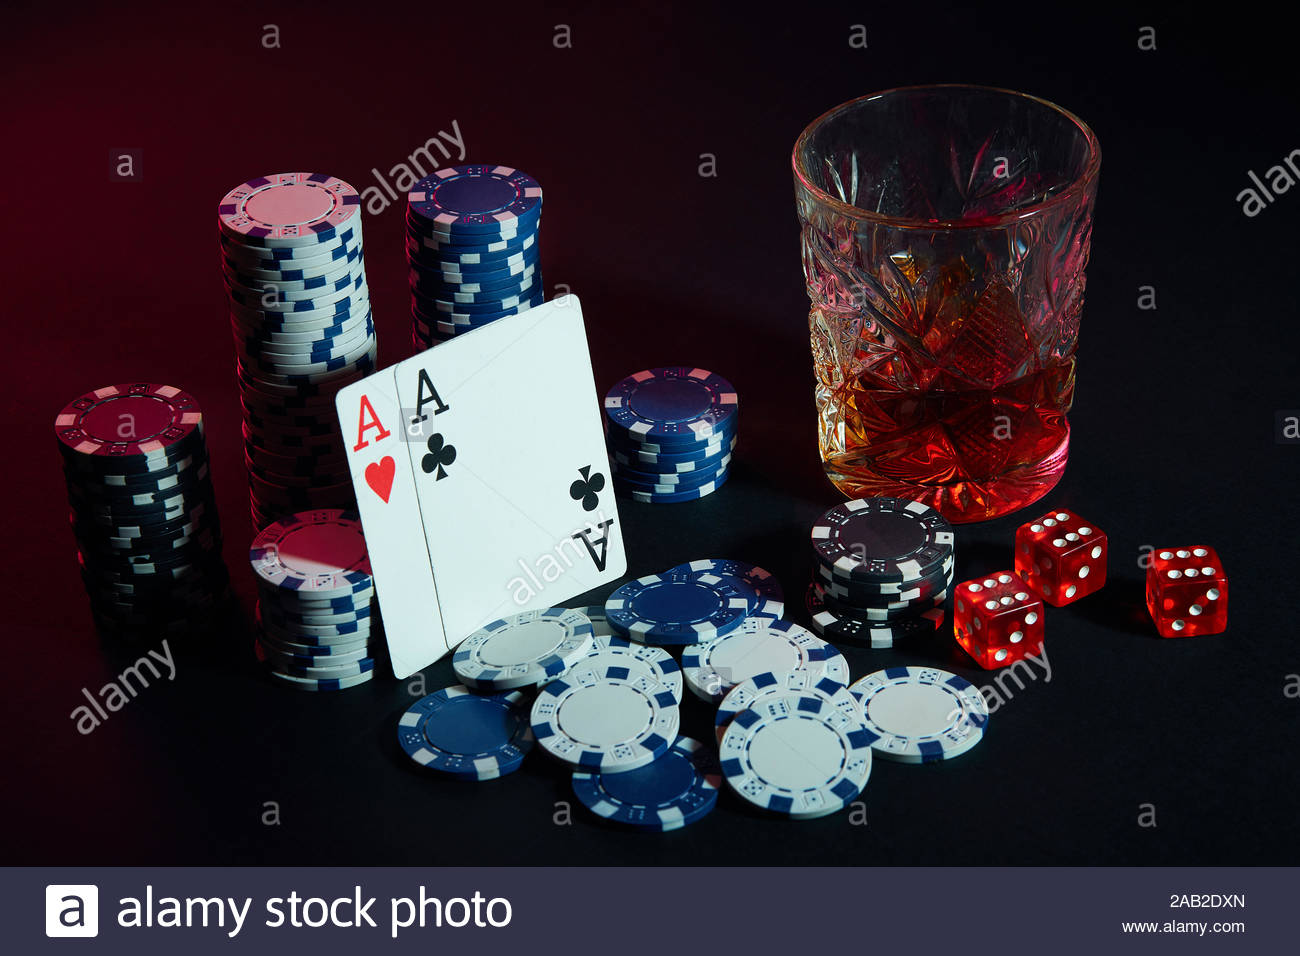 6 Options To Online Gambling